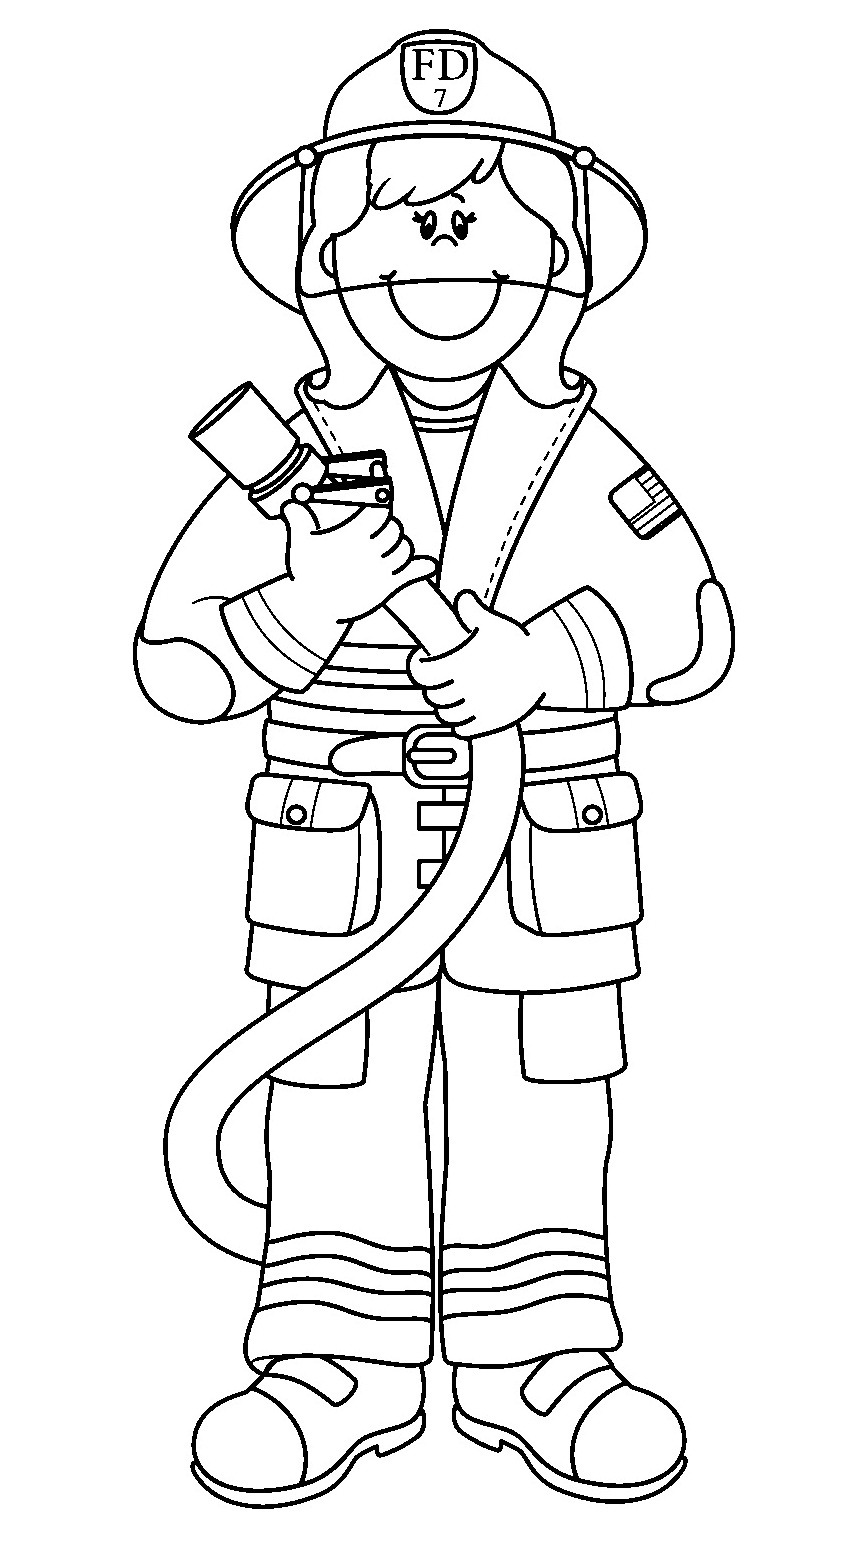 fire man coloring pages - photo#14